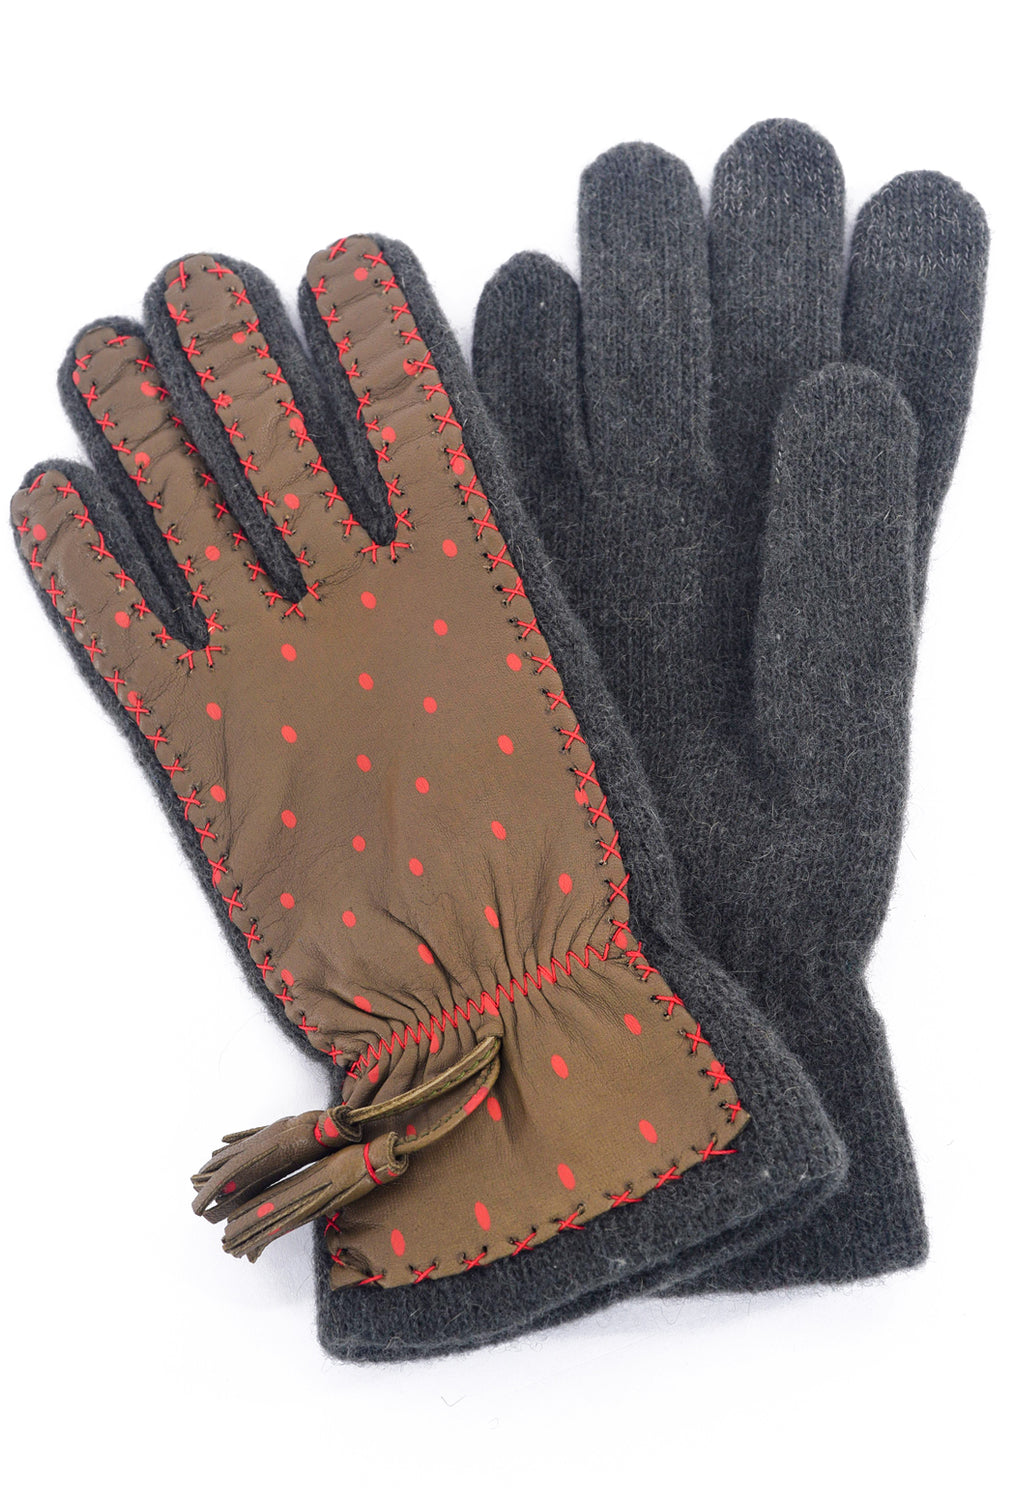 Santacana Madrid Leather & Knit Dots Gloves, Army/Orange One Size Army